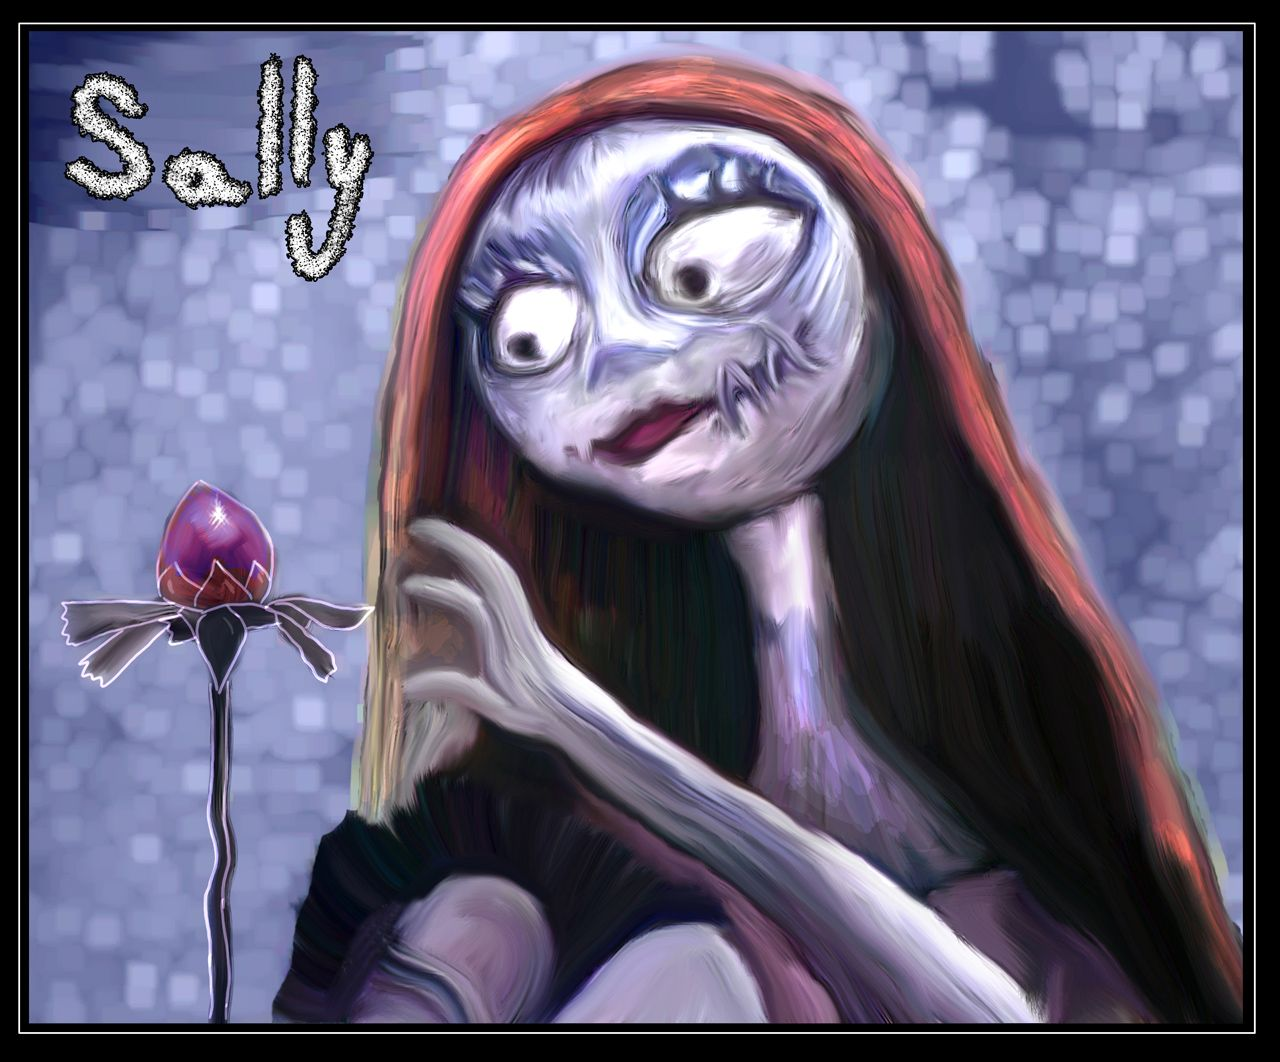 Nightmare Before Christmas Wallpaper | HD Wallpapers: Christmas ...